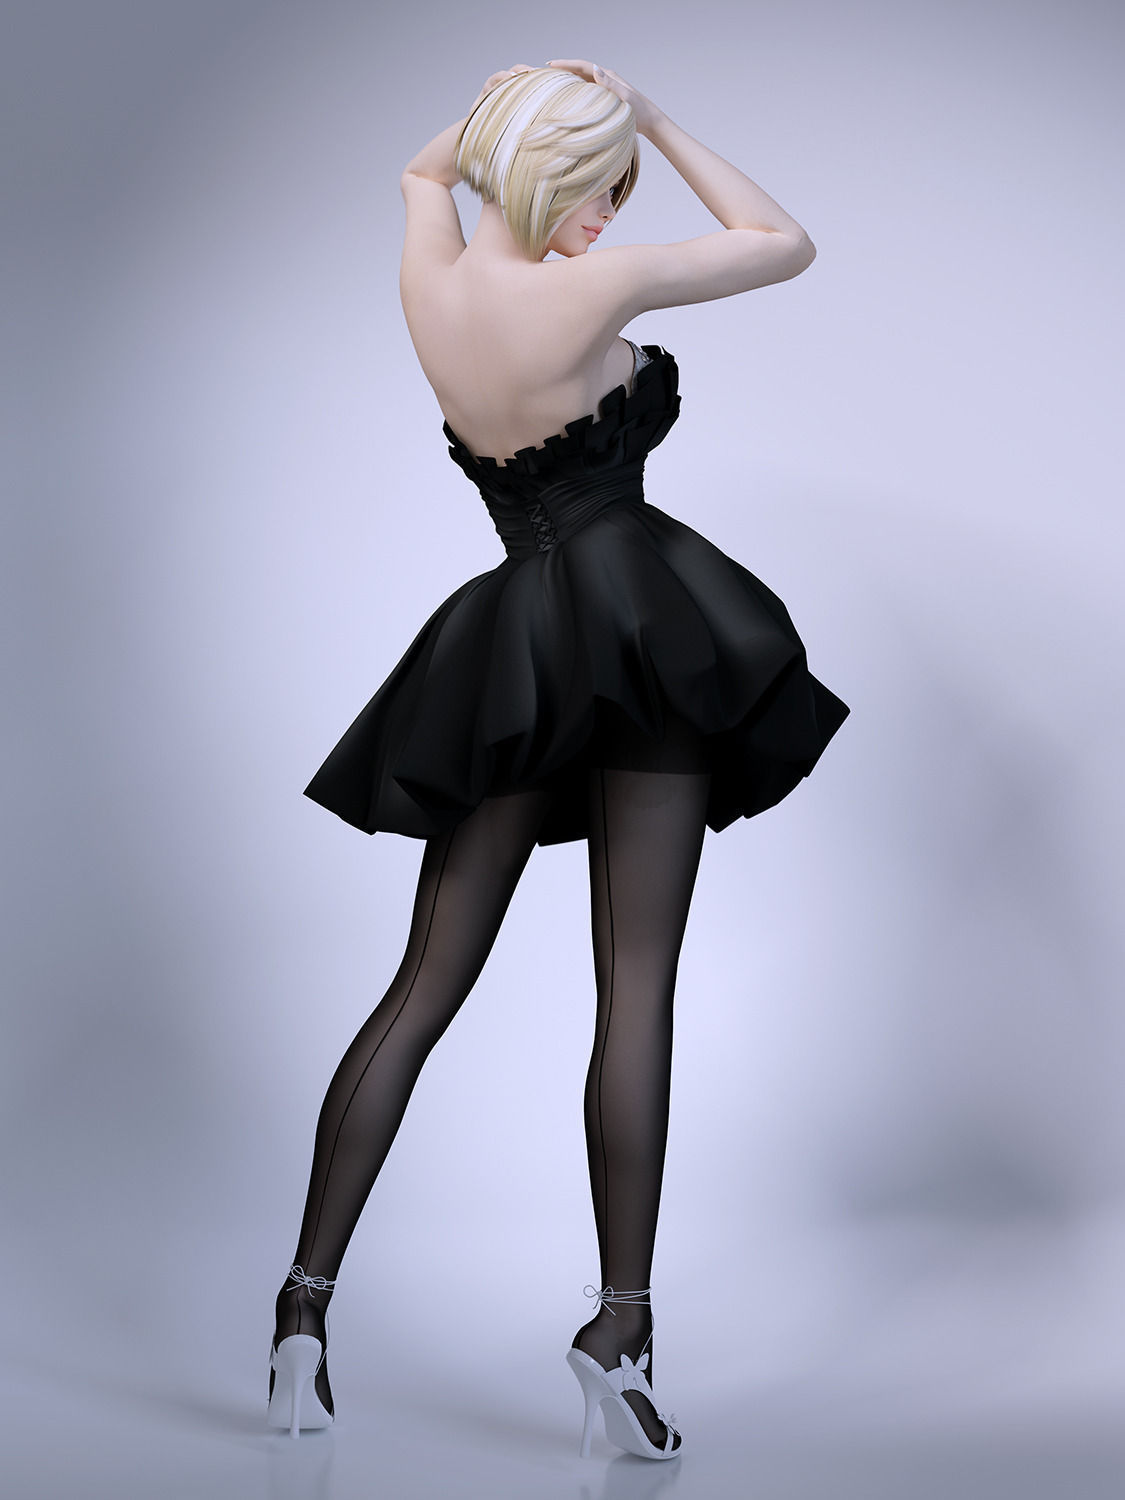 3d Models For Poser And Daz Studio: Girl Skirt Stockings 3D Model .max .obj .fbx